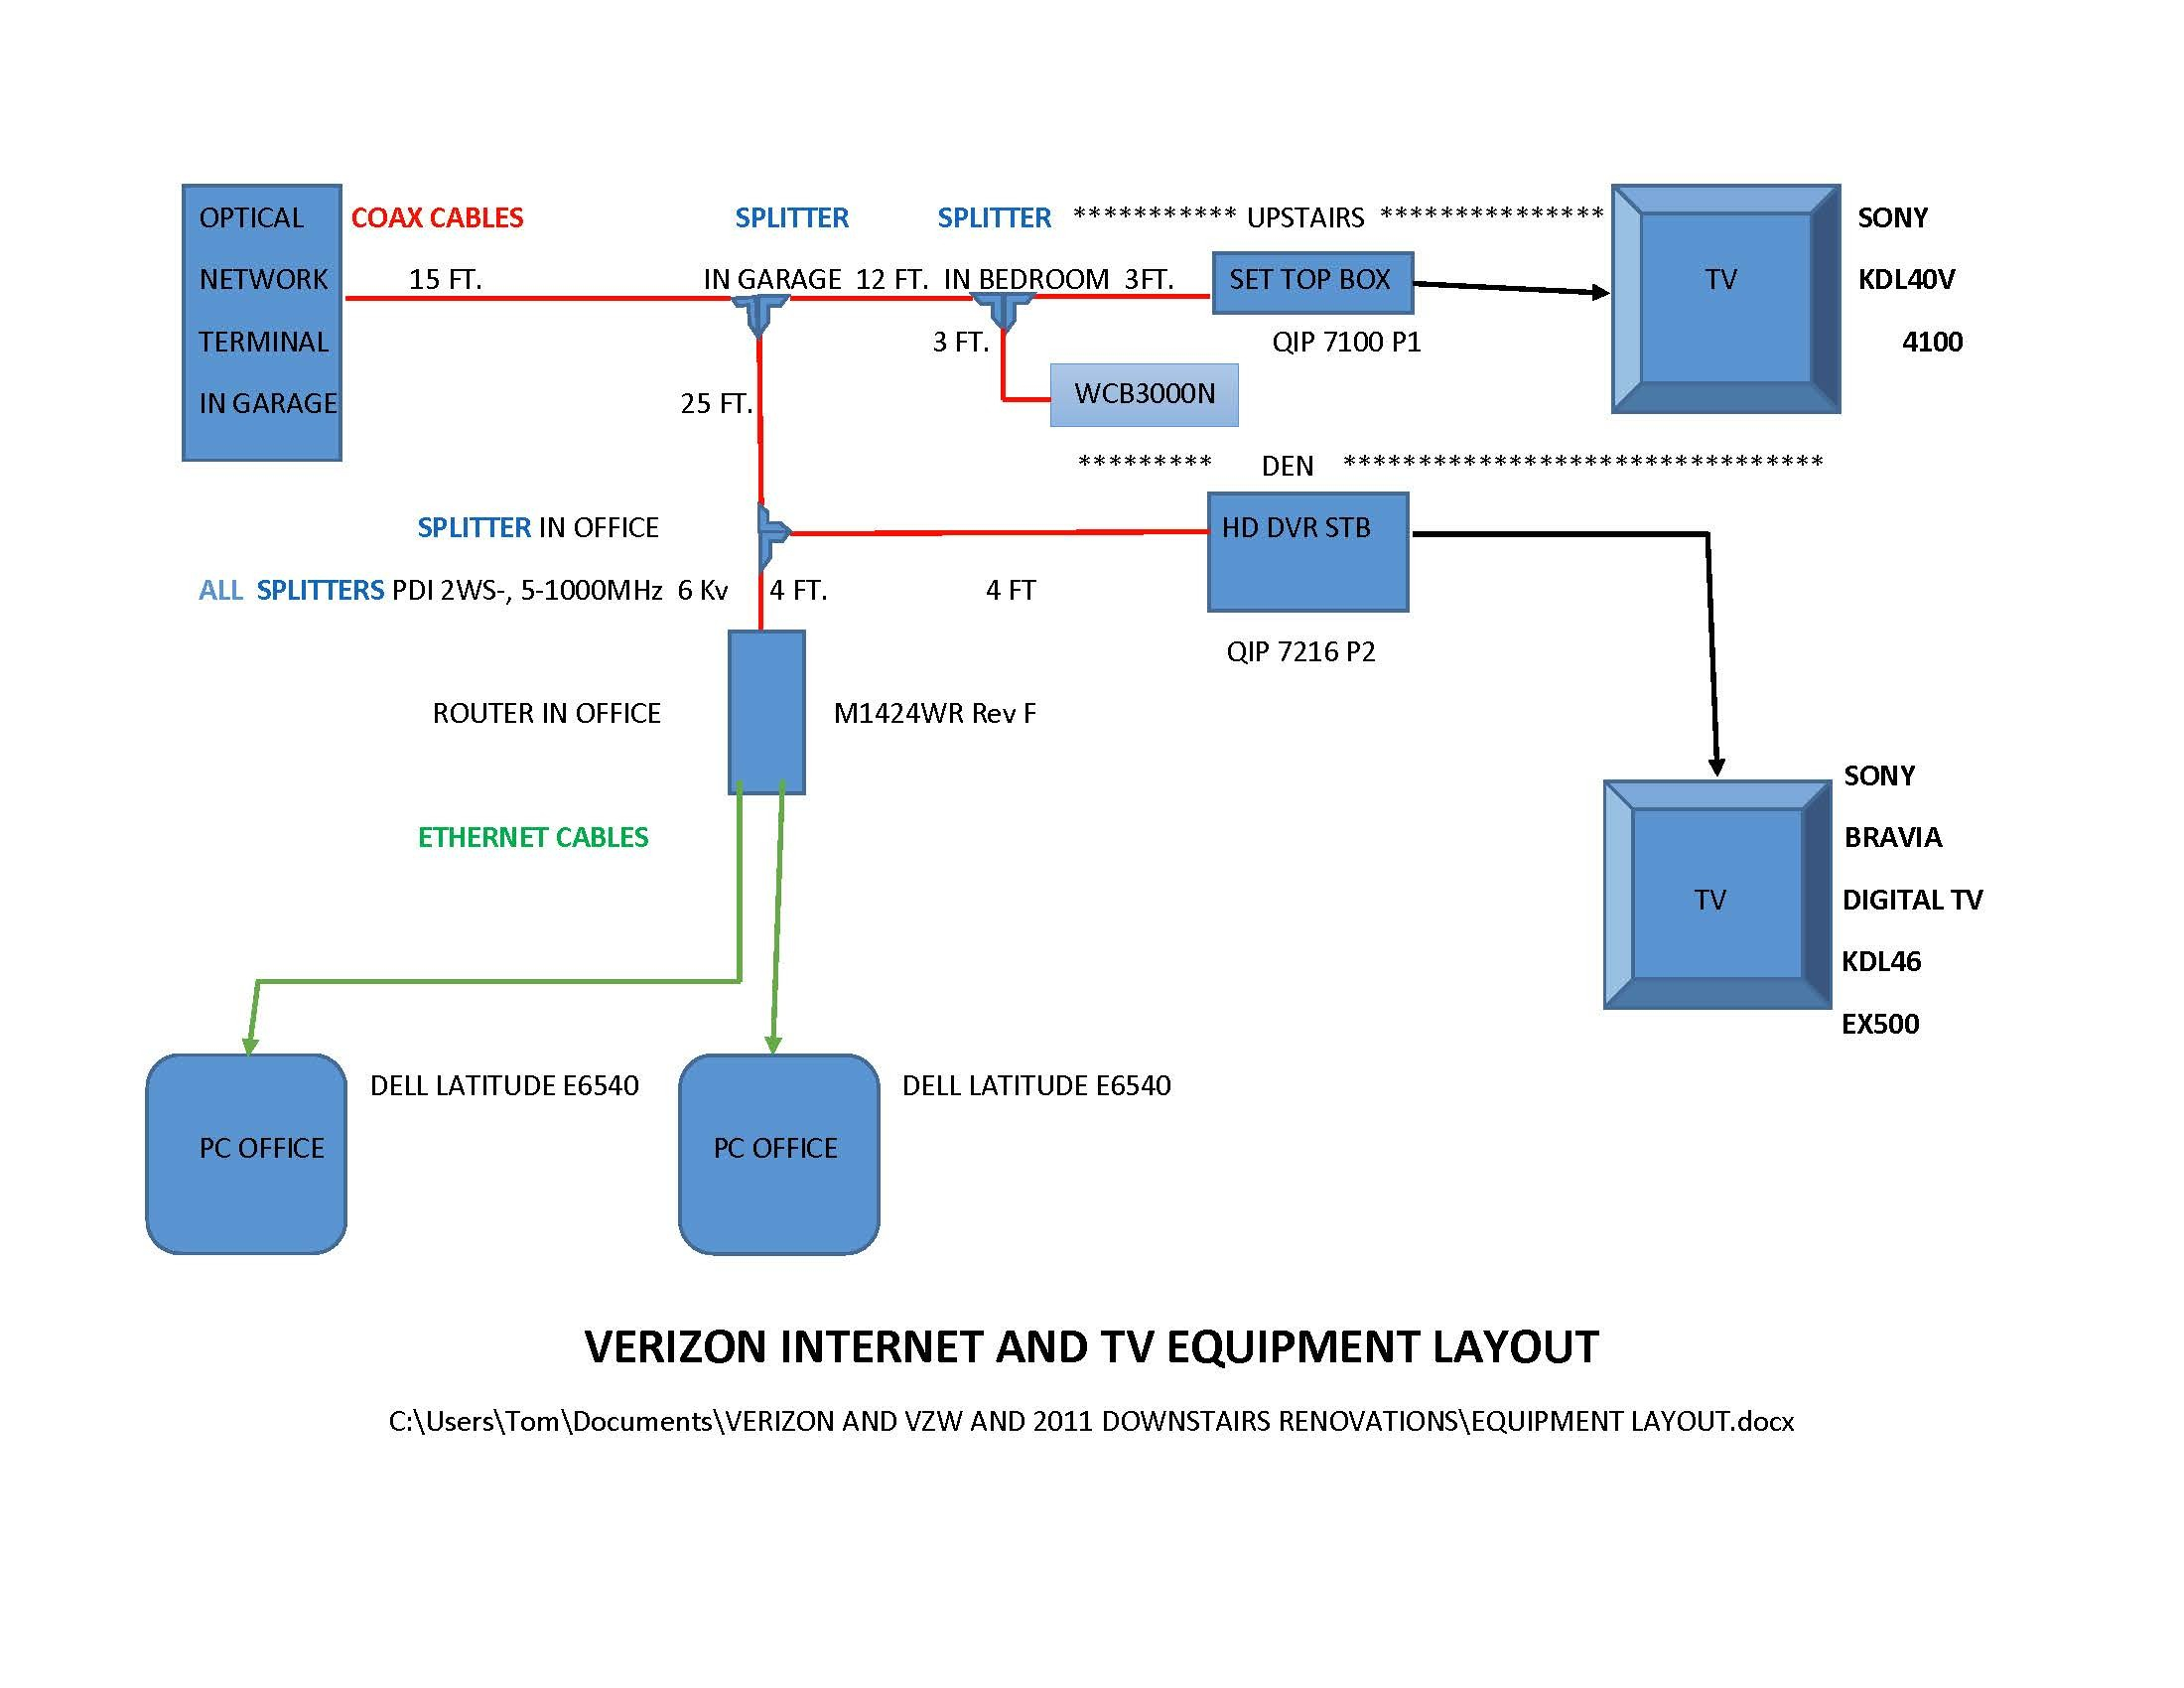 verizon fios wiring diagram Collection-Verizon Fios Wiring Diagram Beautiful Verizon Fios Wiring Diagram & Verizon Fios t Question 14-a